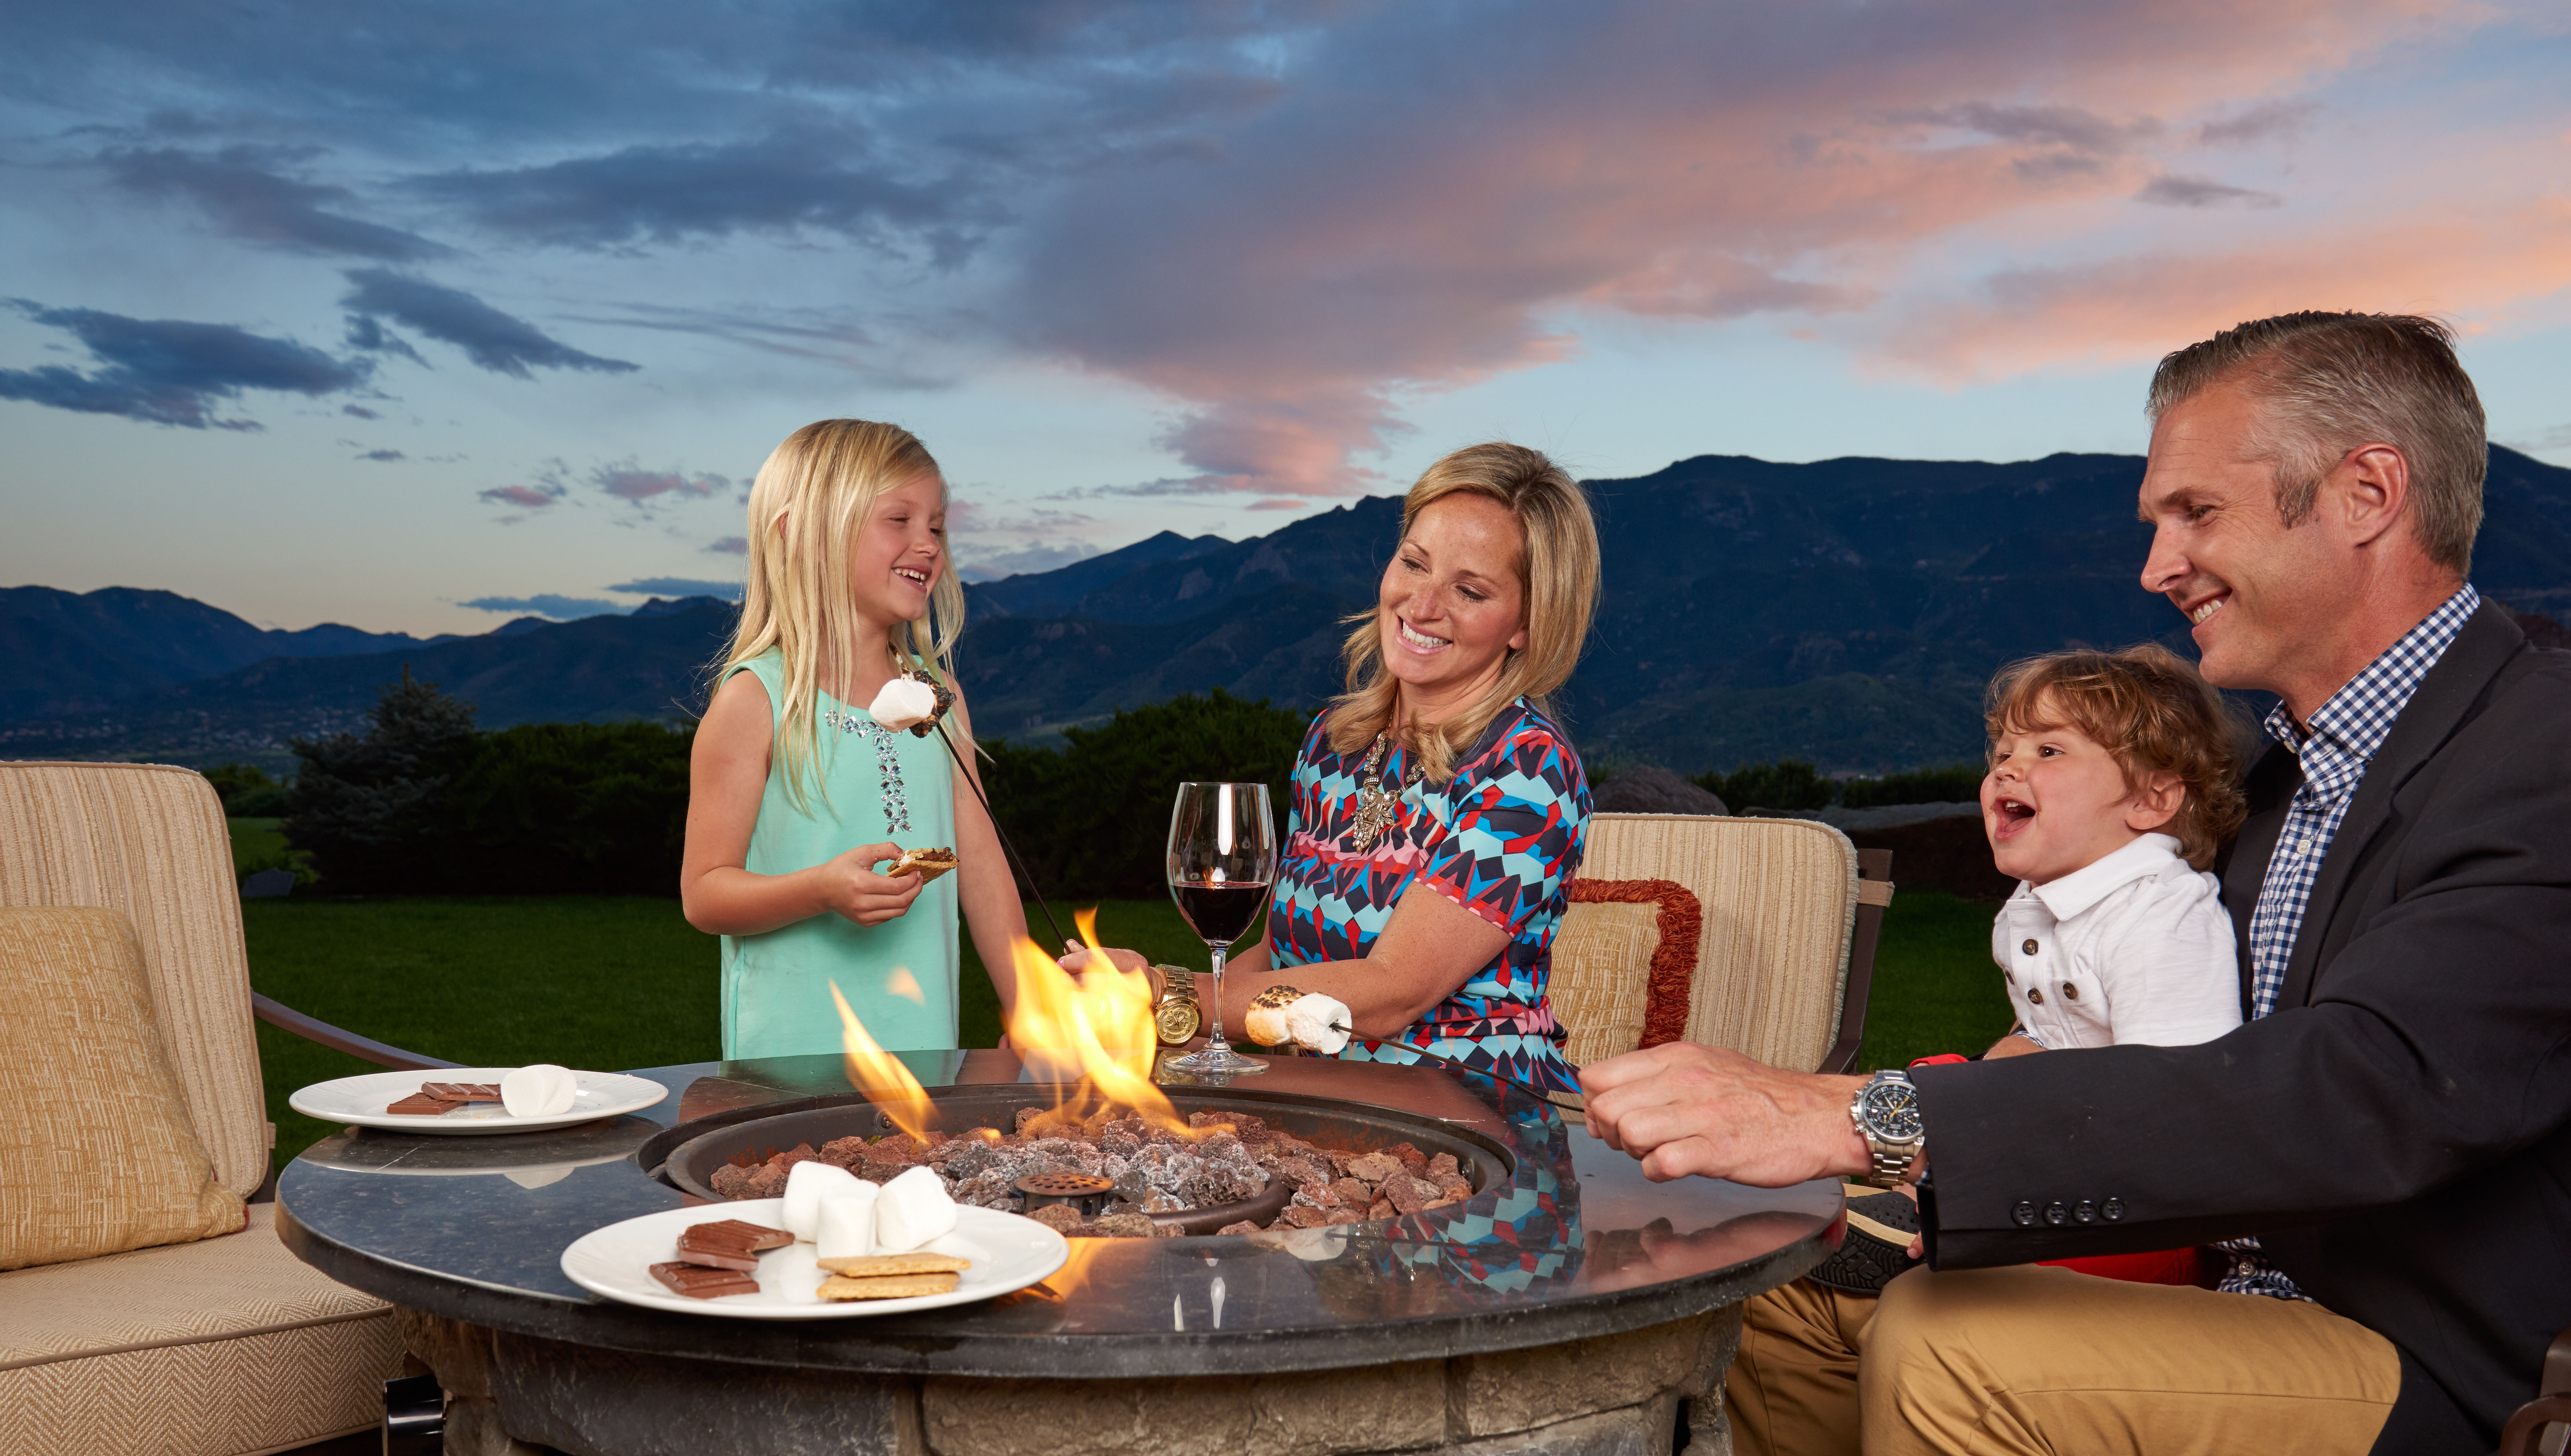 family making s'mores